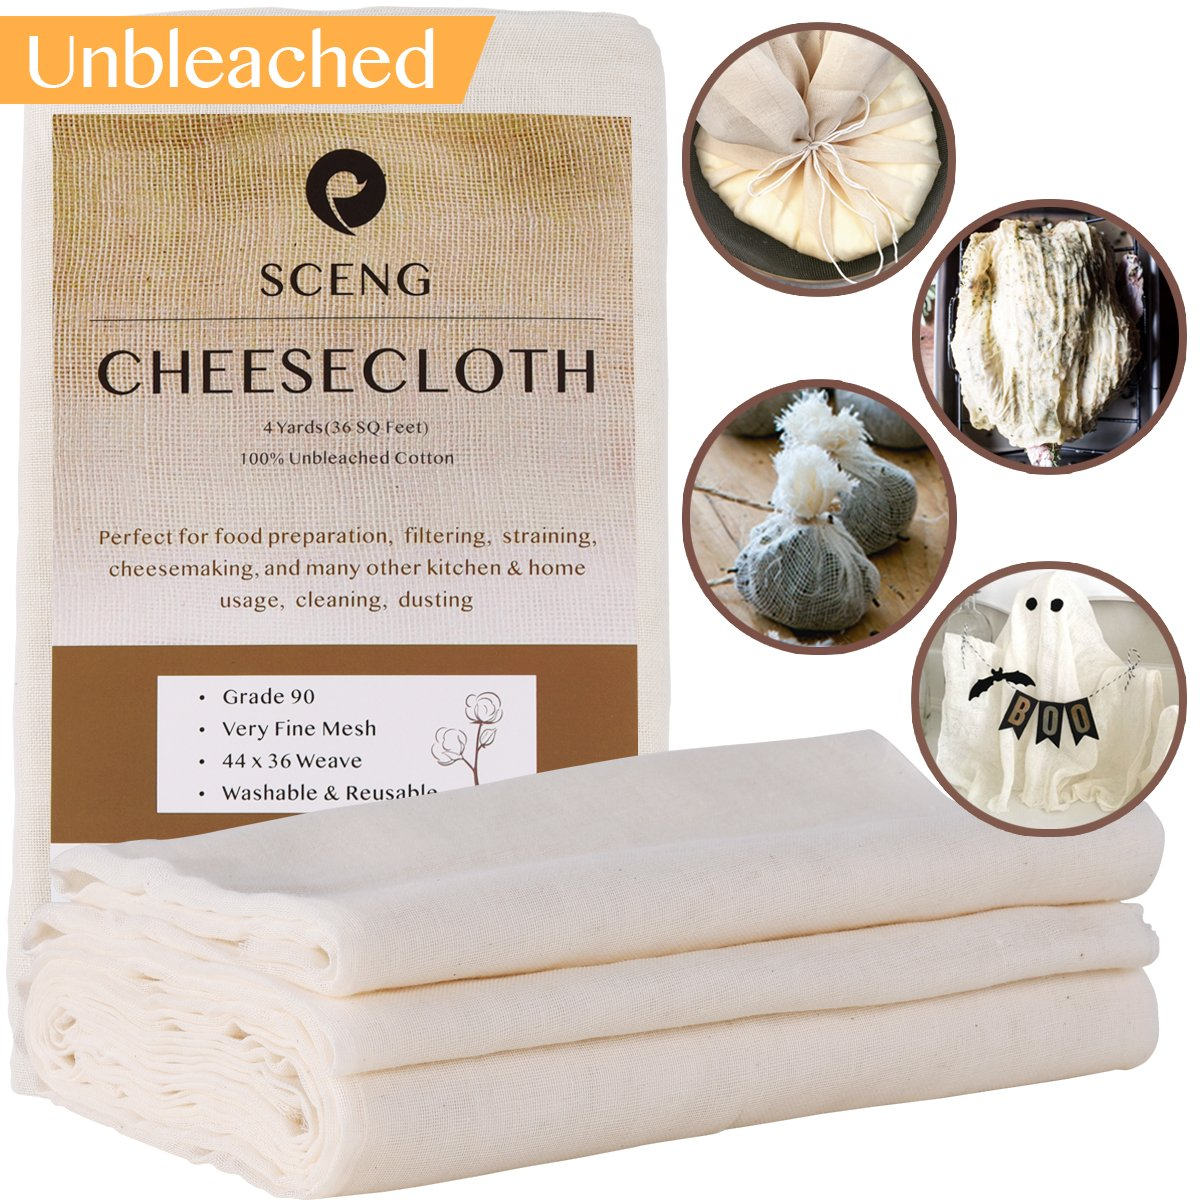 Cheesecloth, Grade 90, 36 Sq Feet, Reusable, 100% Unbleached Cotton Fabric, Ultra Fine Cheesecloth for Cooking - Nut Milk Bag, Strainer, Filter (Grade 90-4Yards) SCENG 4Yards-cheesecloth